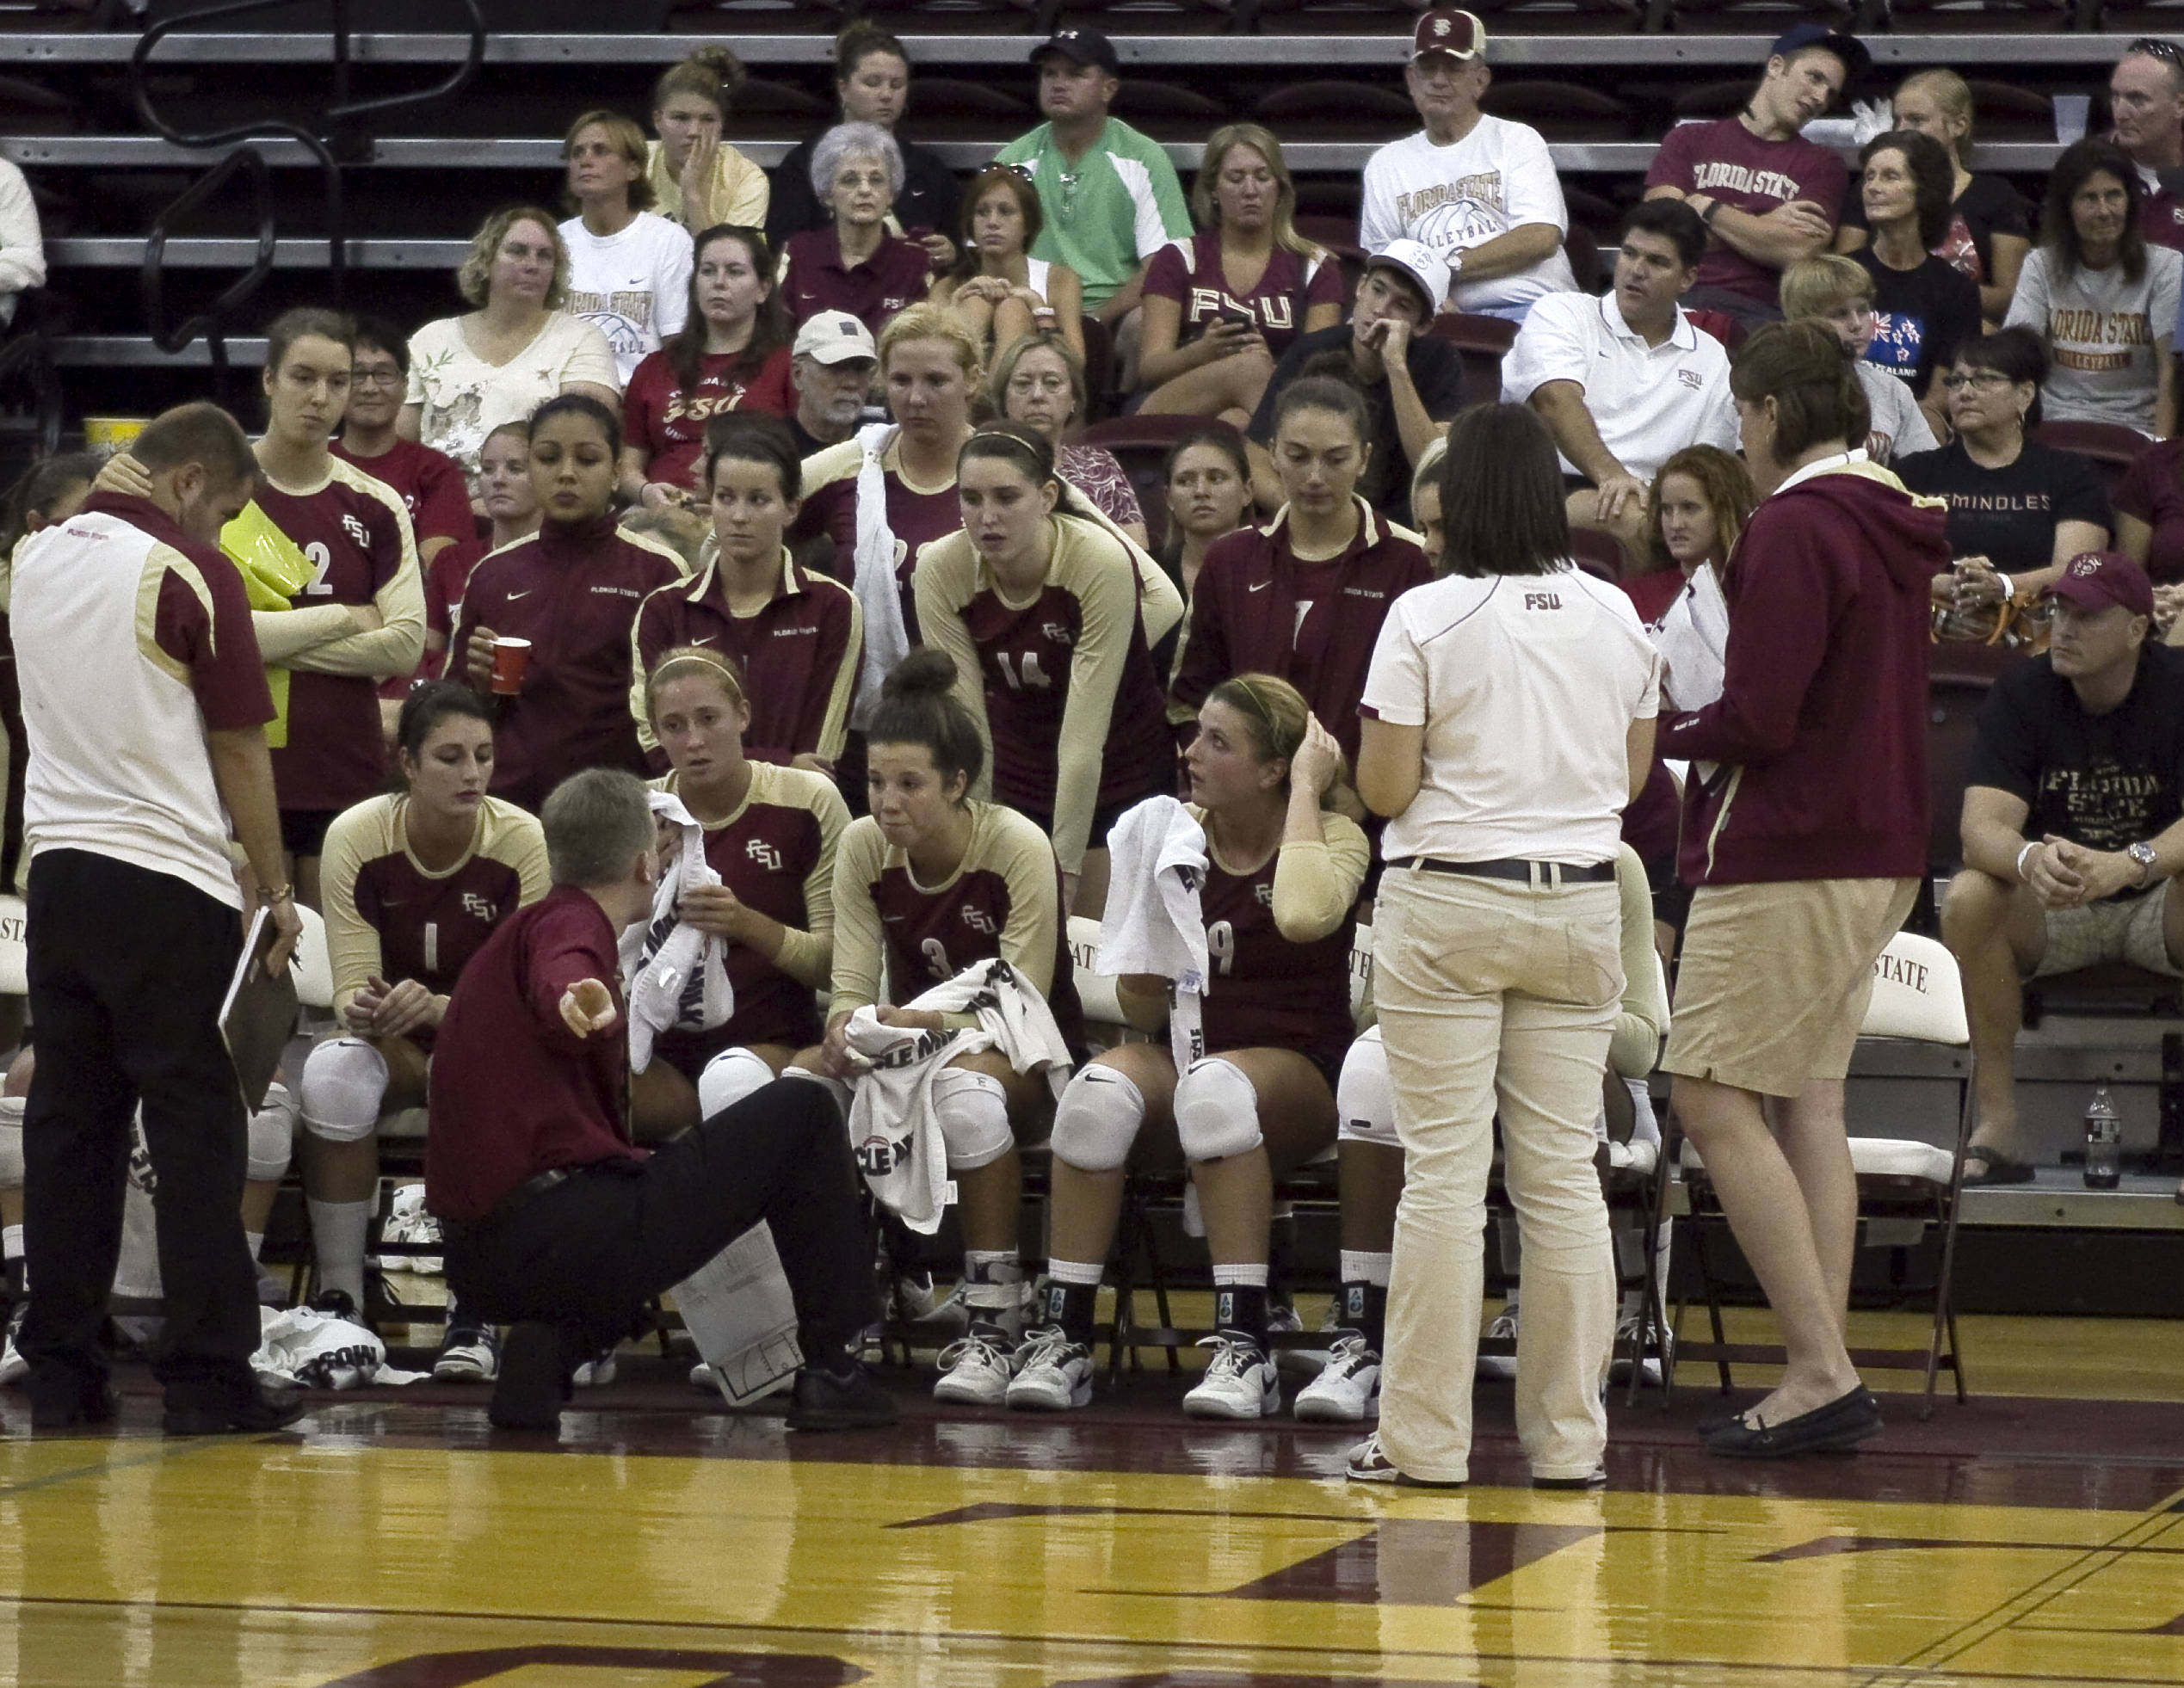 Head Coach Chris Poole with instructions during a time out